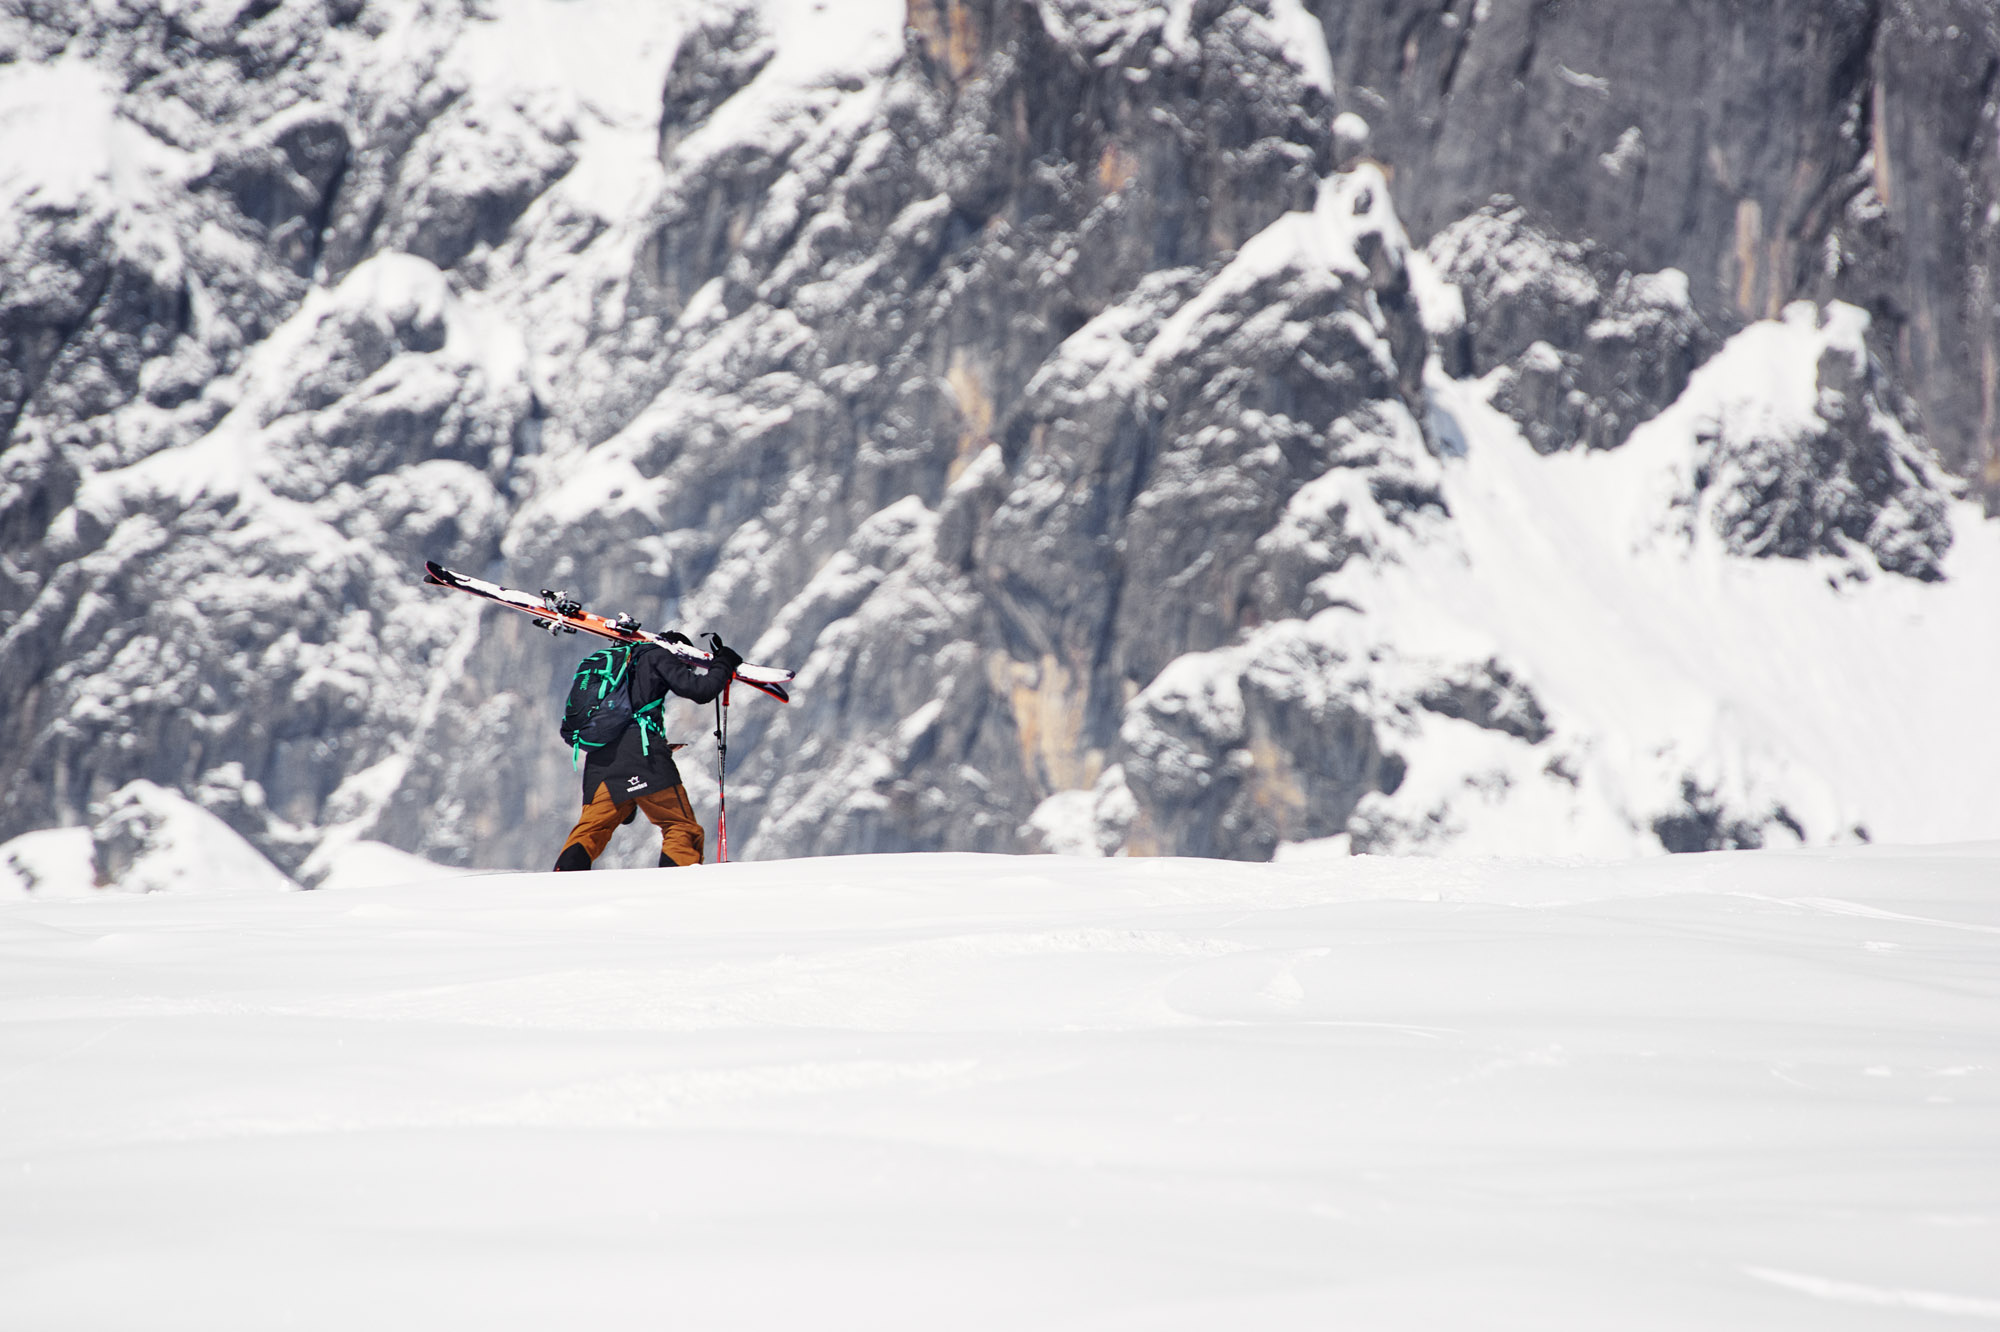 The options for skiing in winter in the Hochkönig region are incredible.